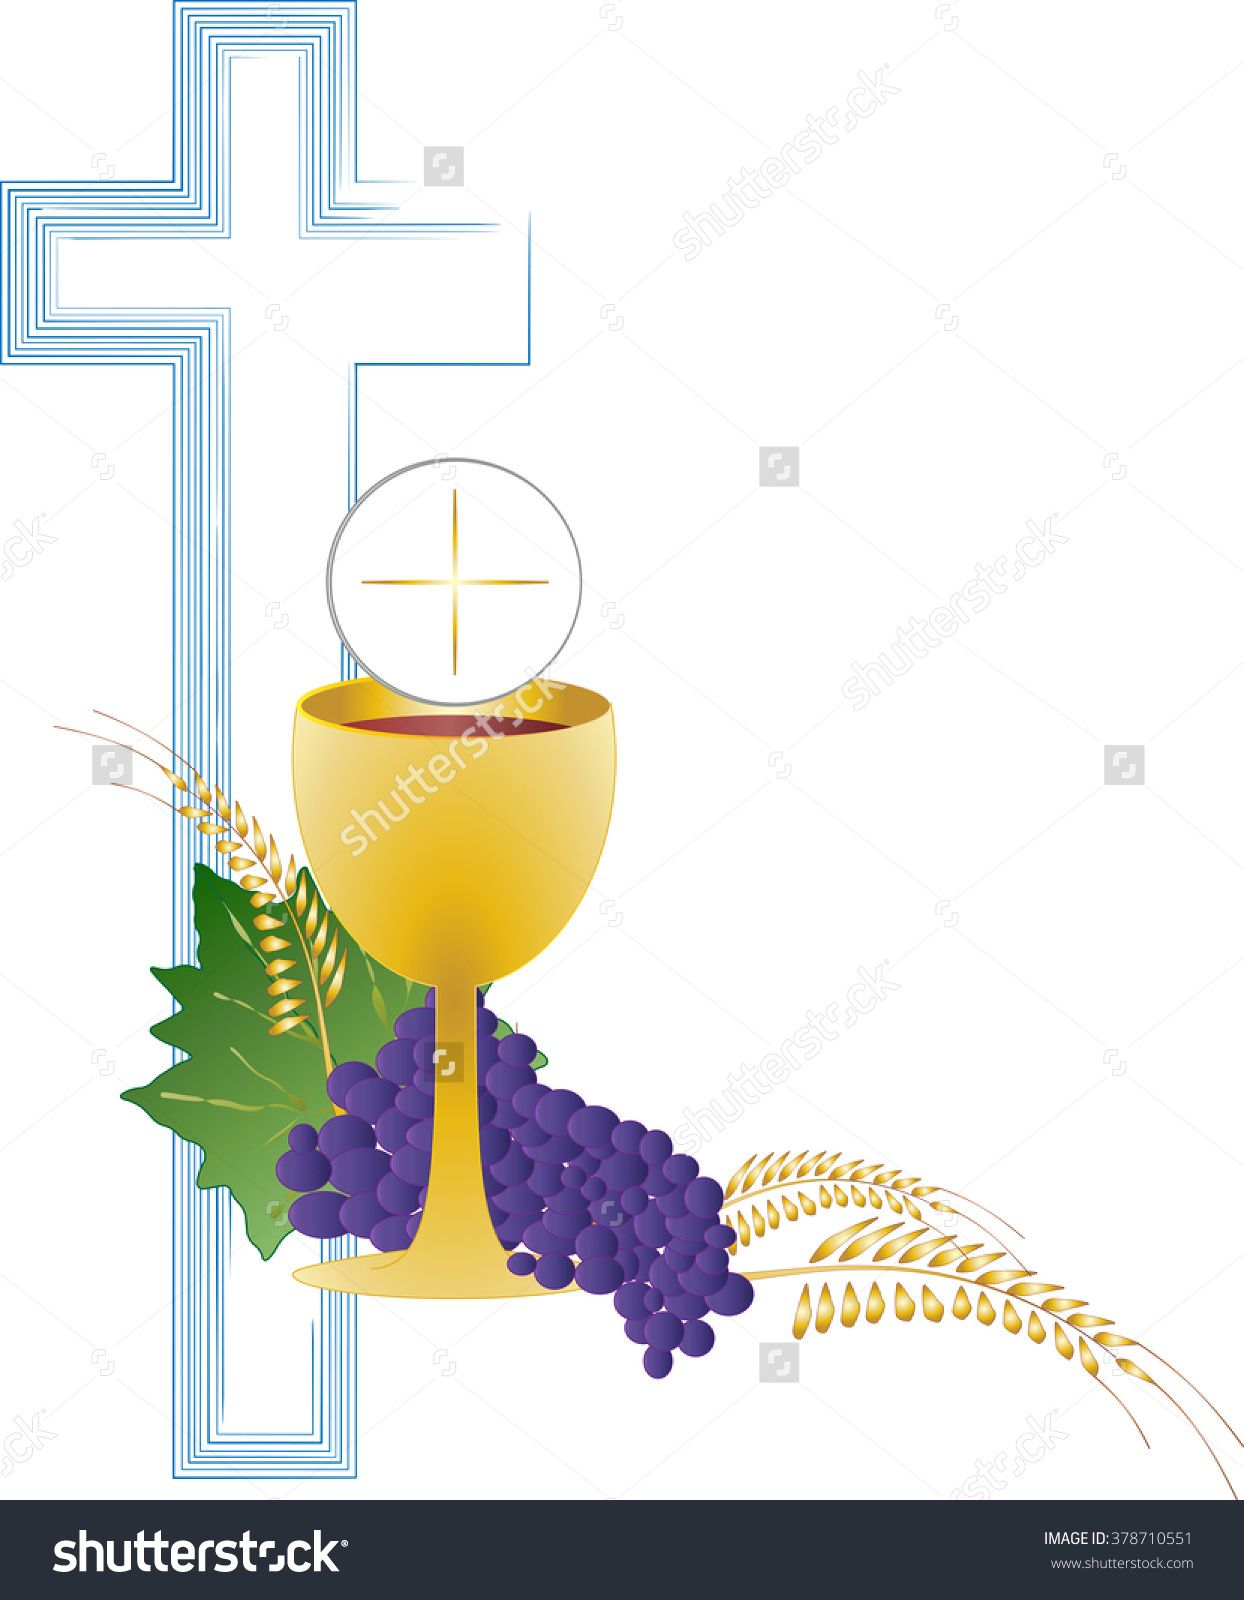 Eucharist Symbol Of Bread And Wine, Chalice And Host, With Wheat ...